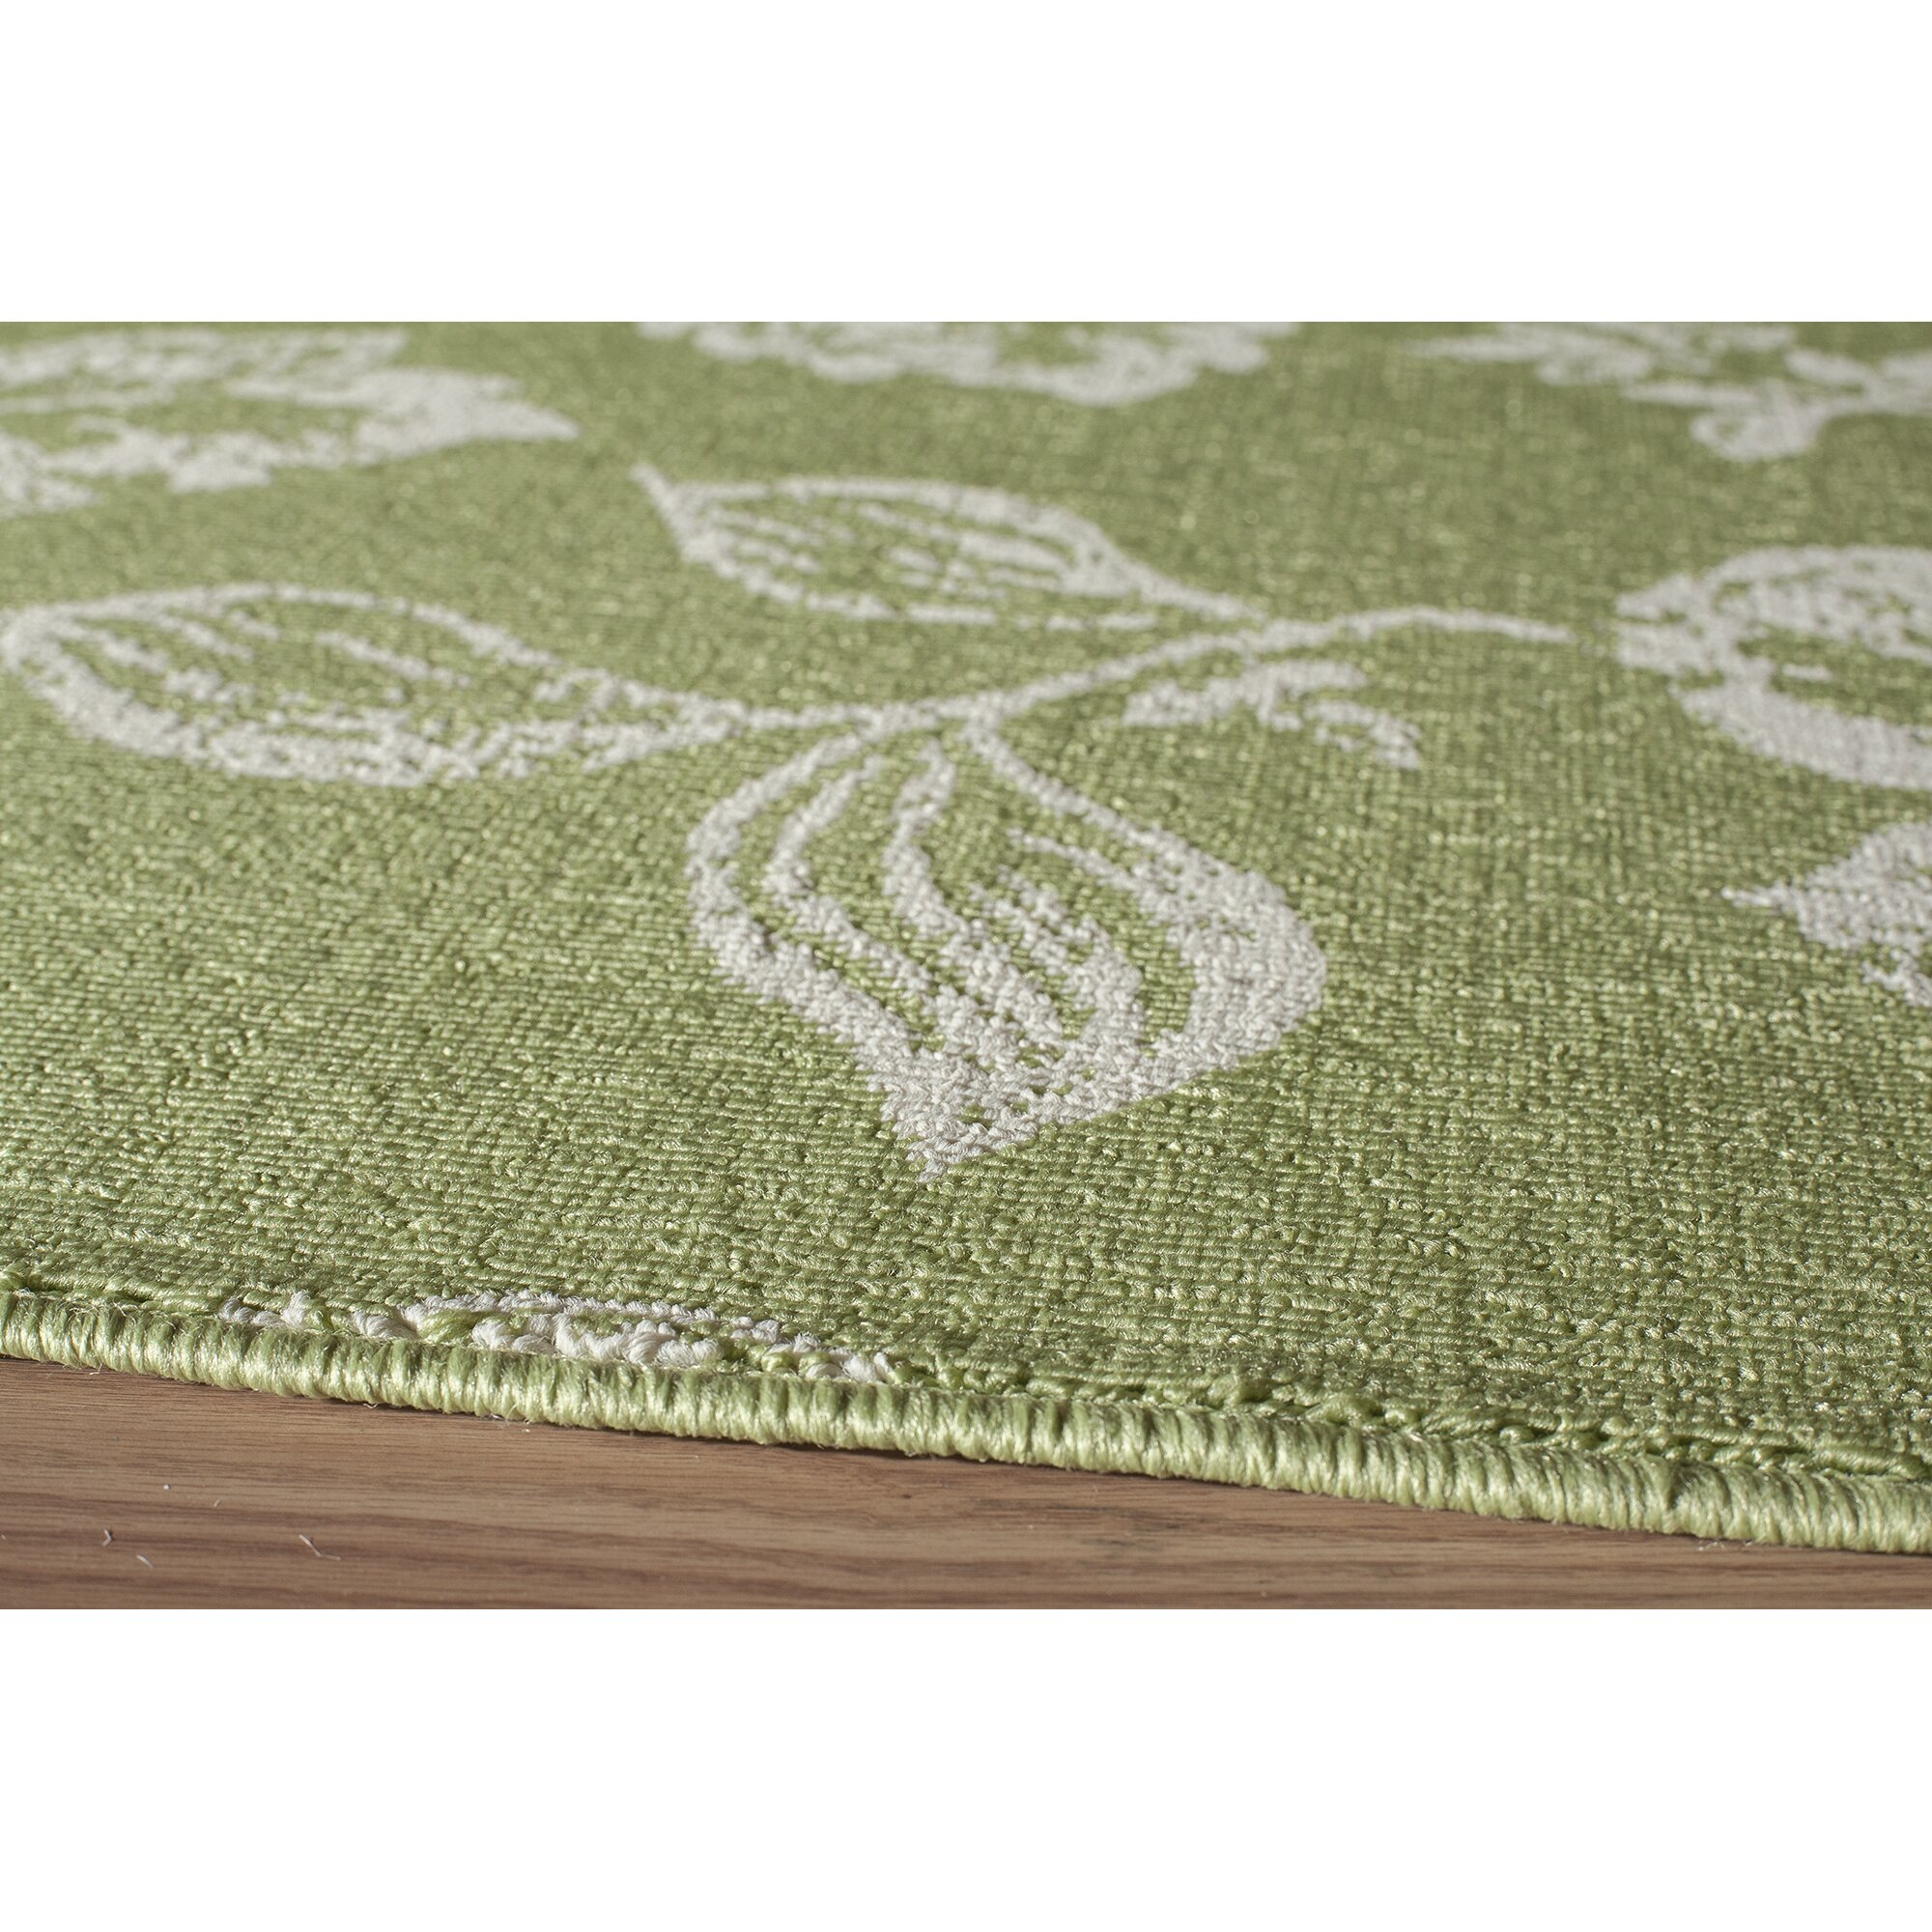 Ophelia co kofi green white indoor outdoor area rug for Indoor outdoor carpet green